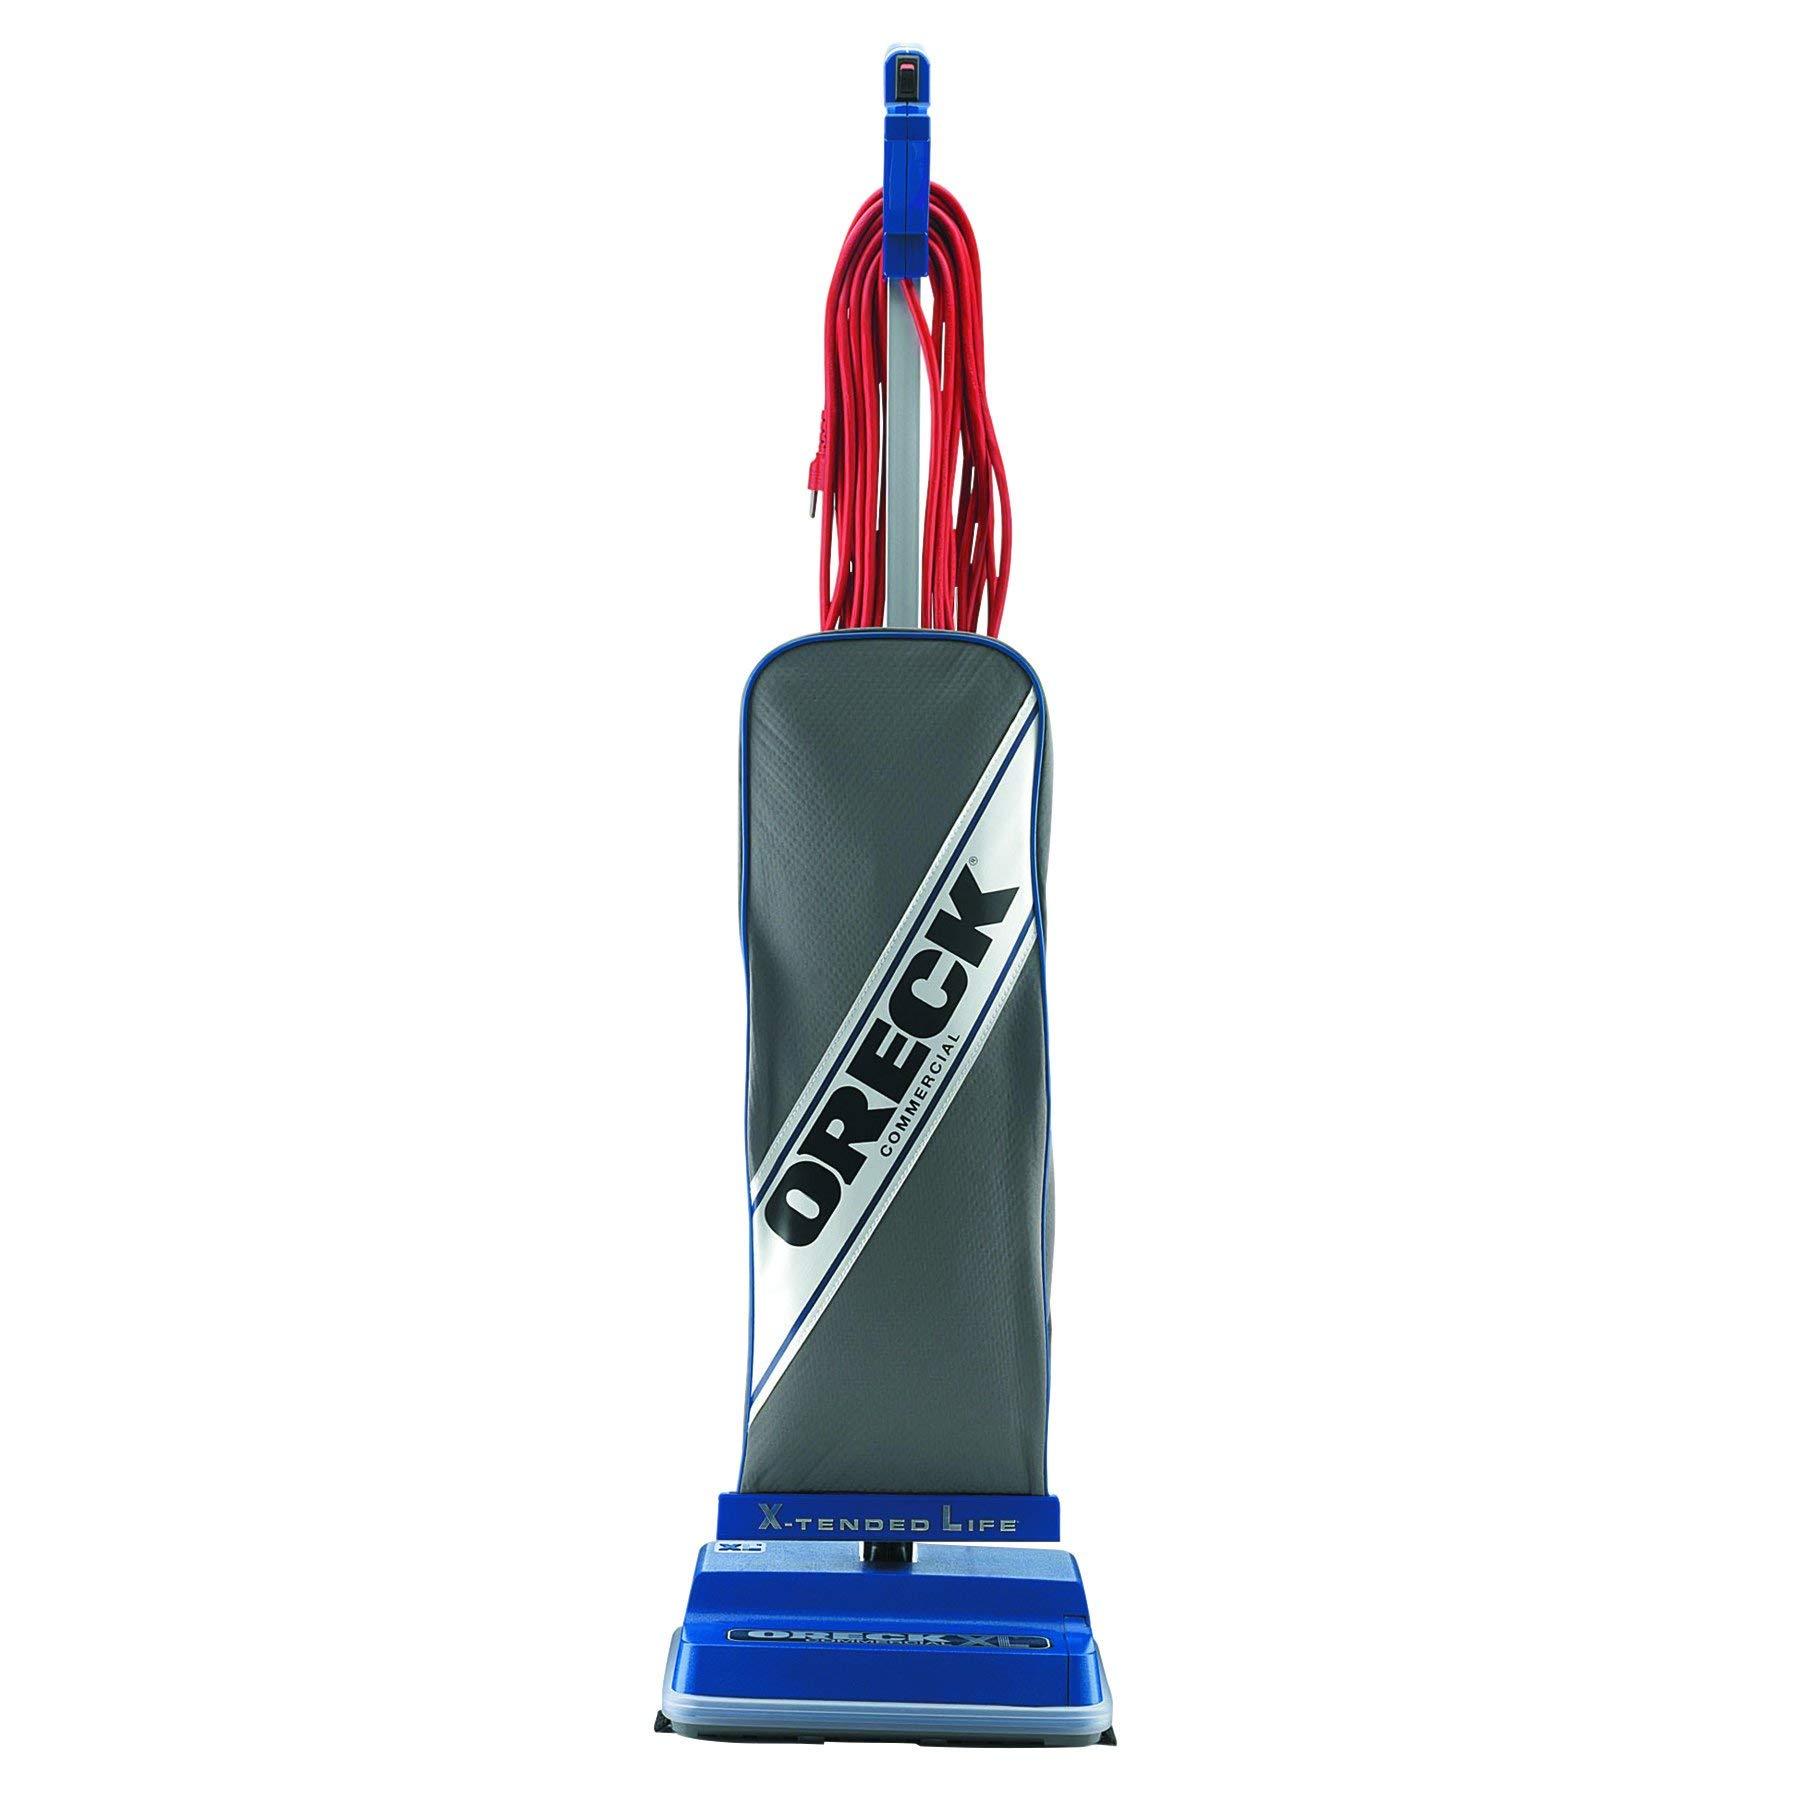 Oreck Commercial XL Commercial Upright Vacuum Cleaner, XL2100RHS (Renewed) by Oreck Commercial